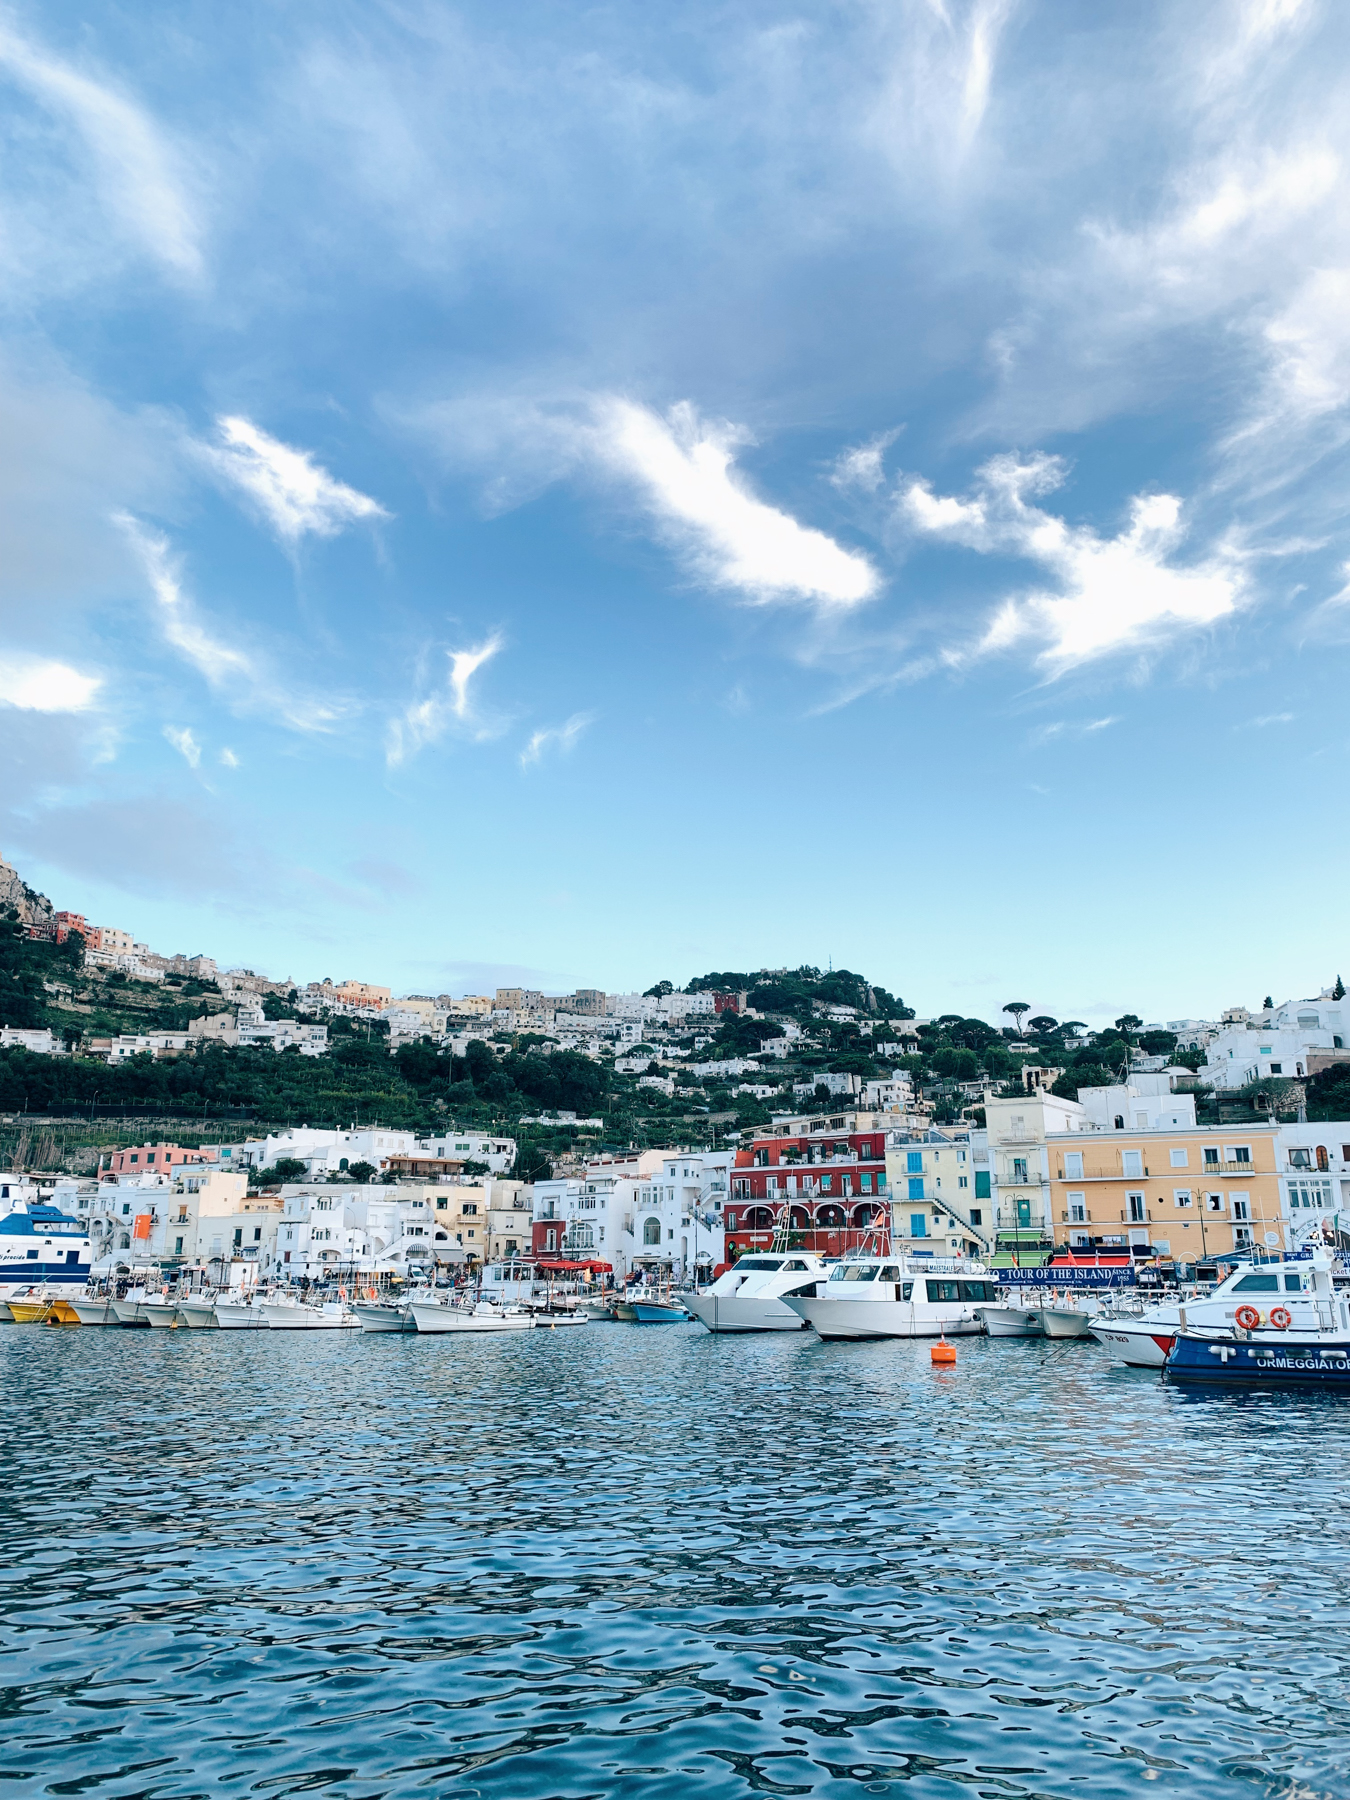 A look up at Capri from the marina.